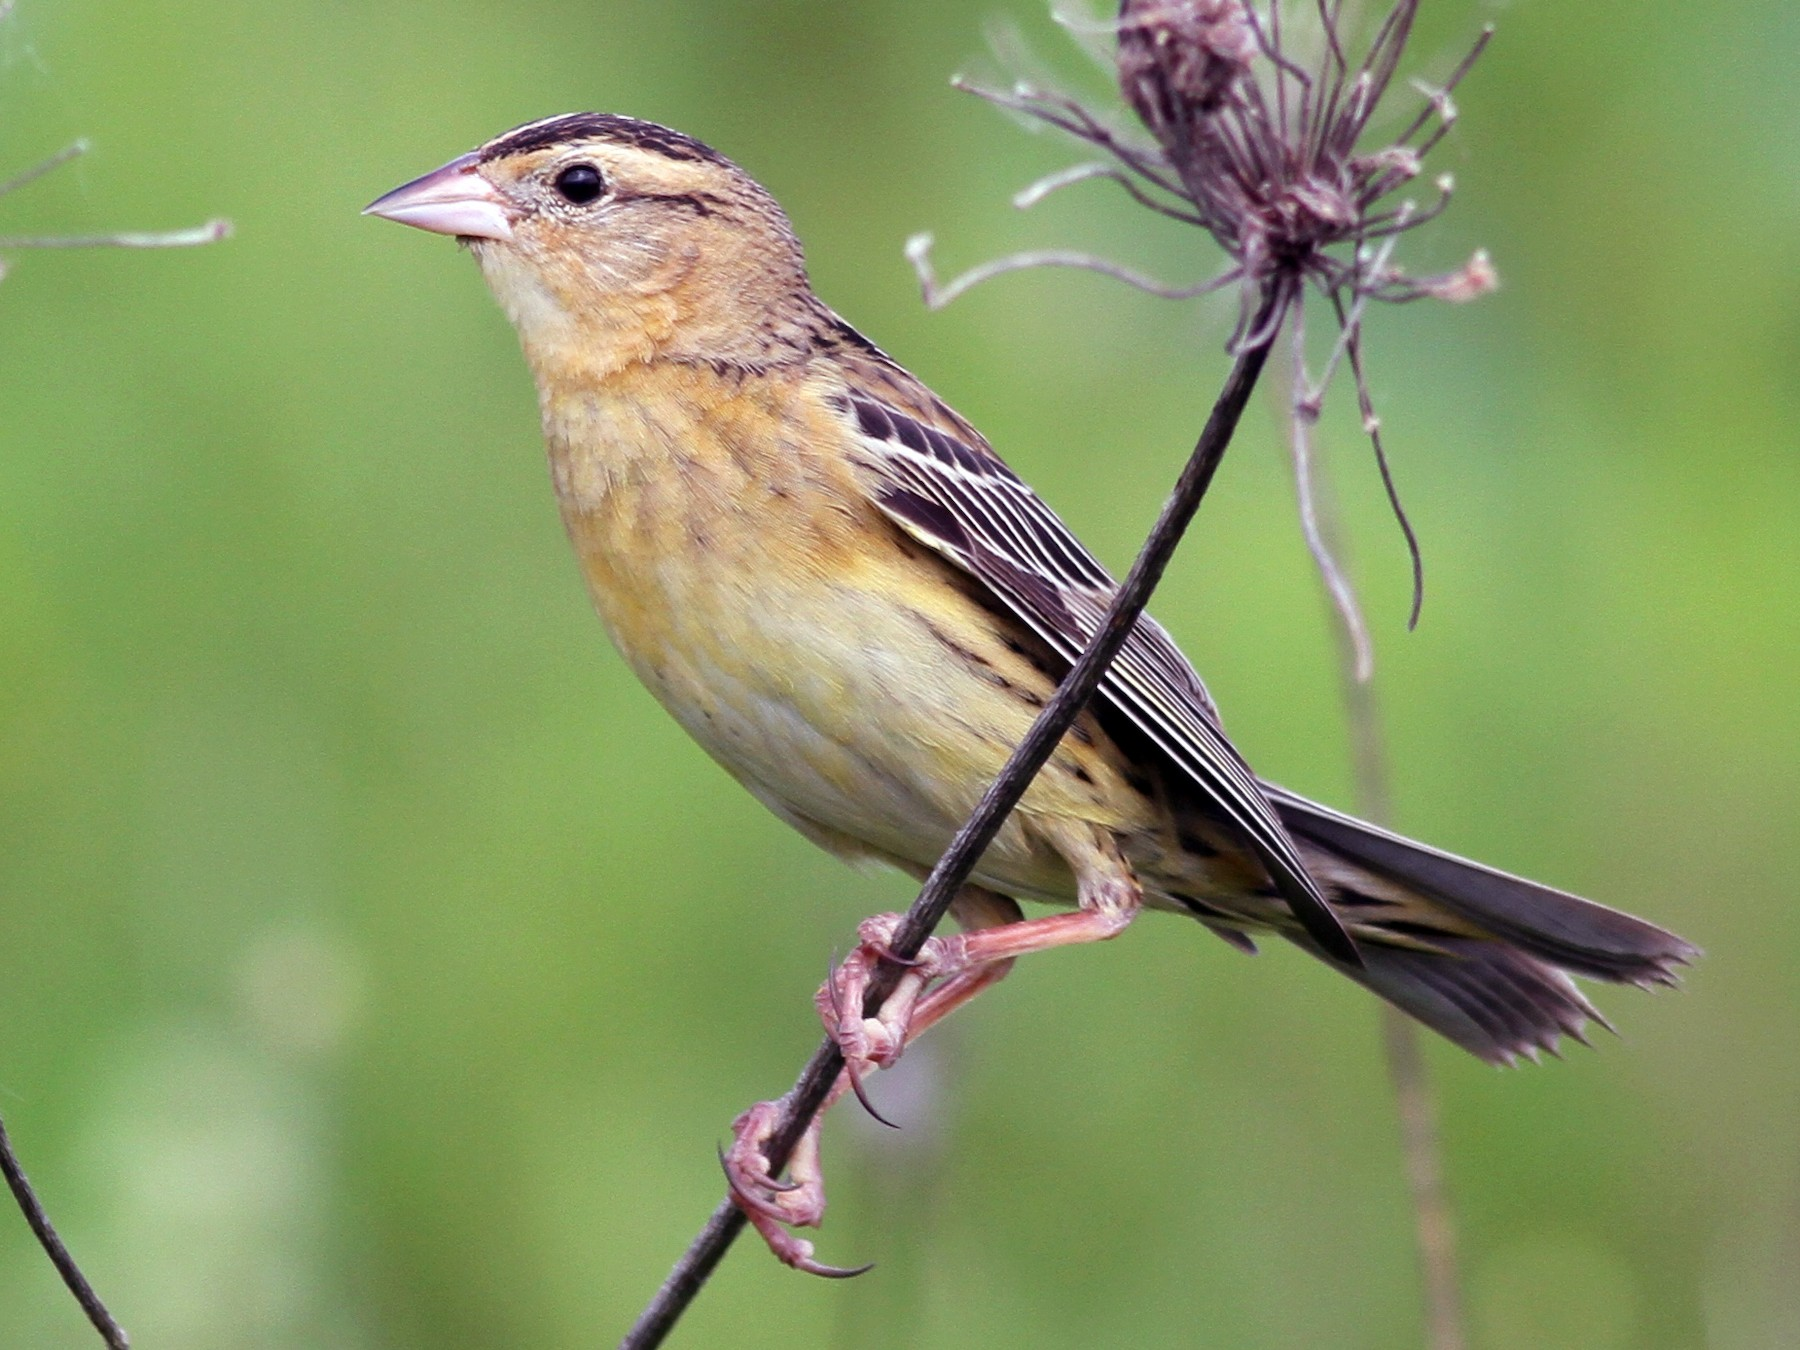 Bobolink - Shawn Billerman